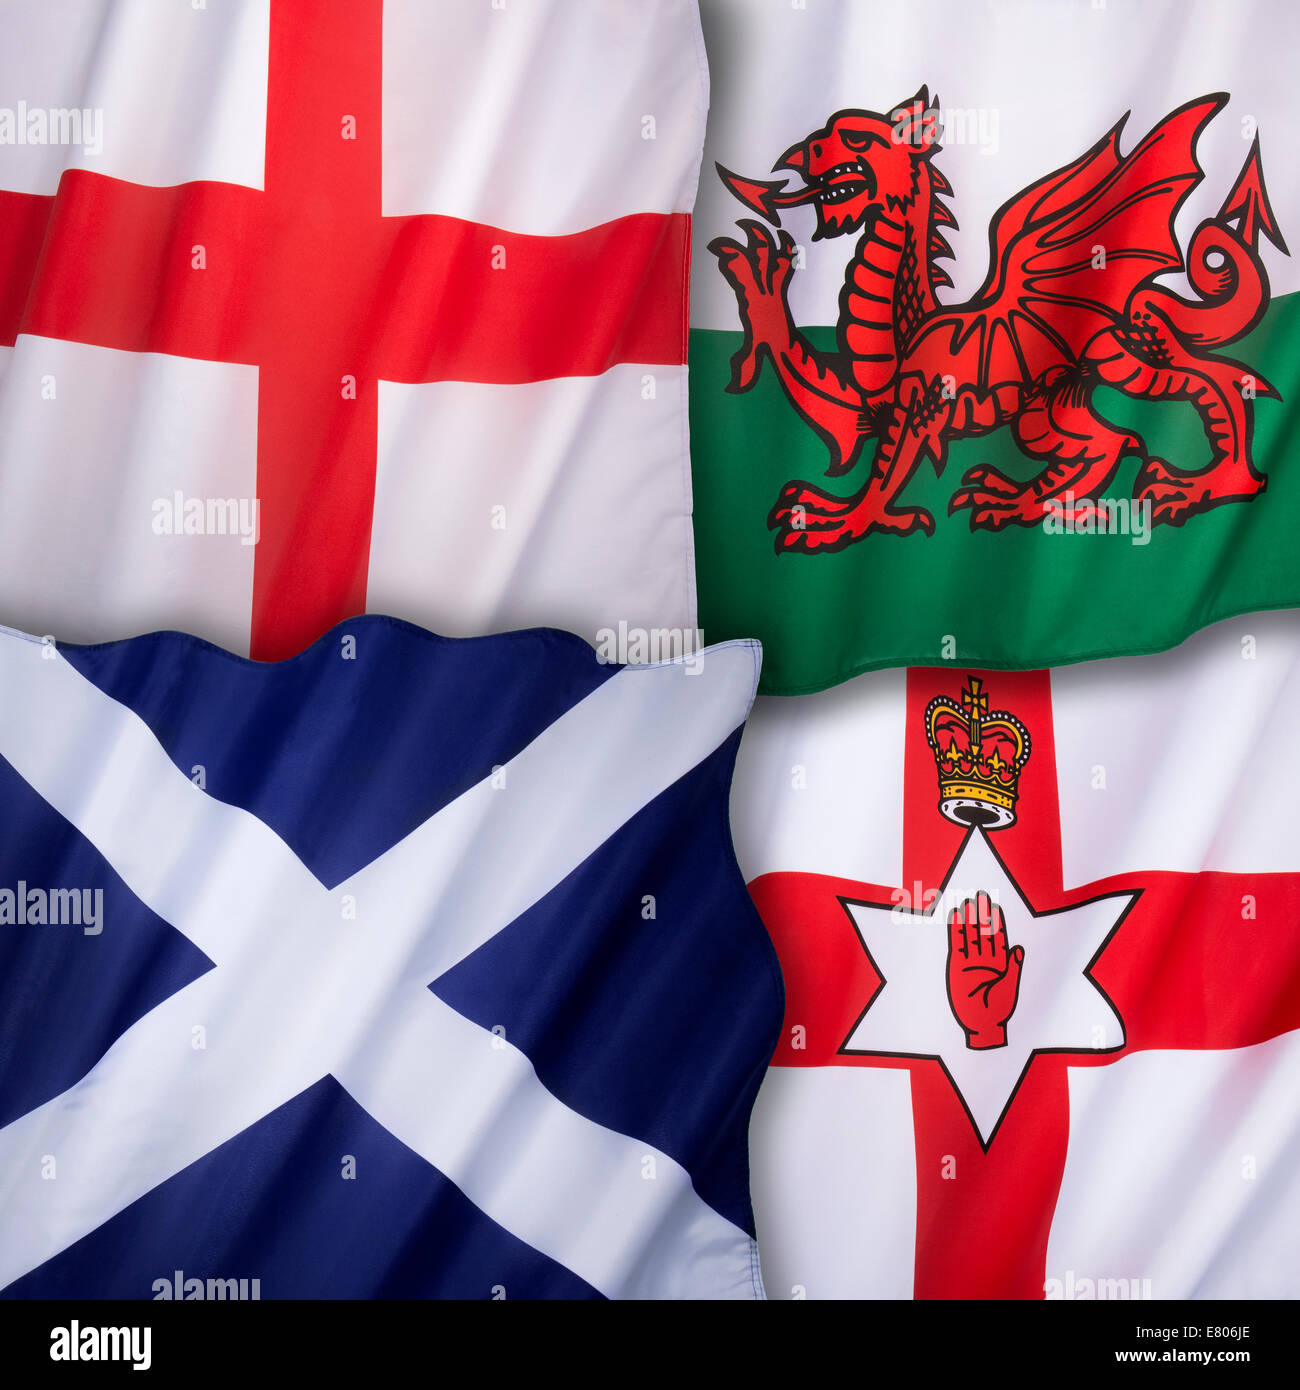 United Kingdom Countries Flags Collection. Flag Of England ... |United Kingdom Scotland Ireland